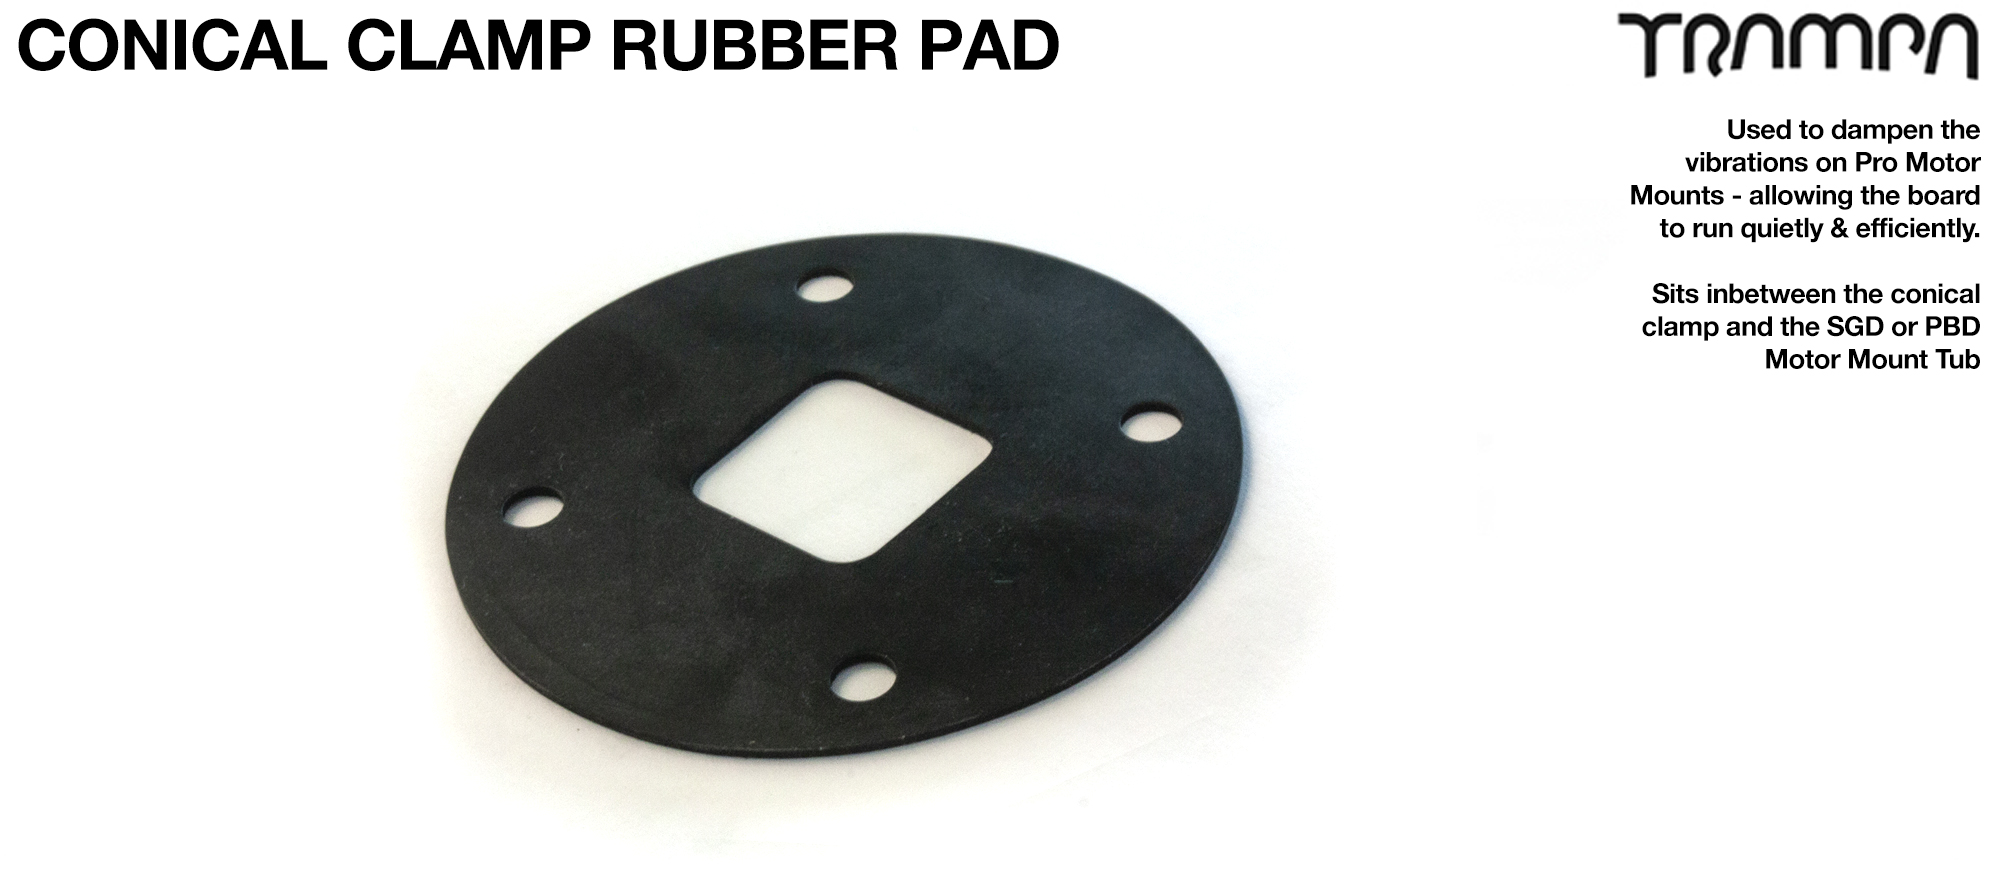 Mountainboard Motor Mount Rubber pad for Conical Clamps - Fits both BELT & SPUR Gear Drive Motor Mounts